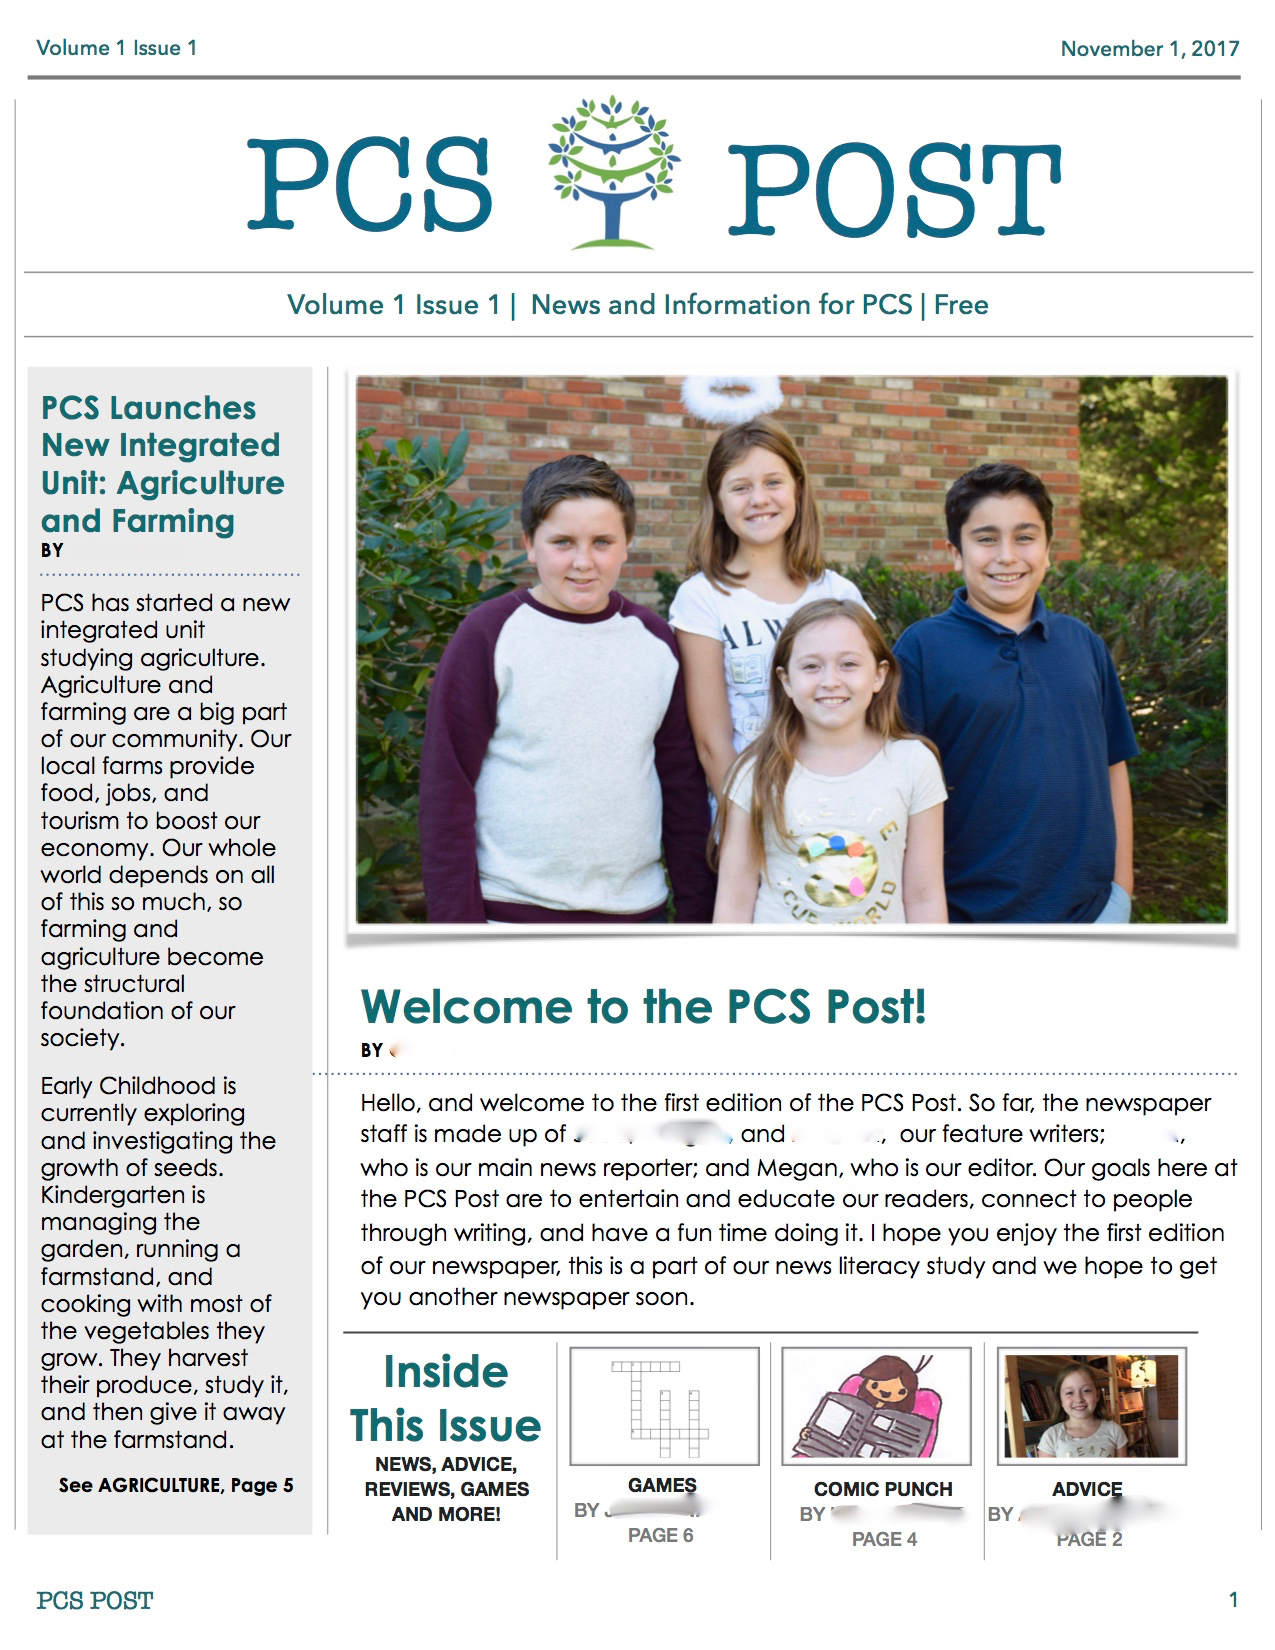 pcs post issue 1 page 1.jpg